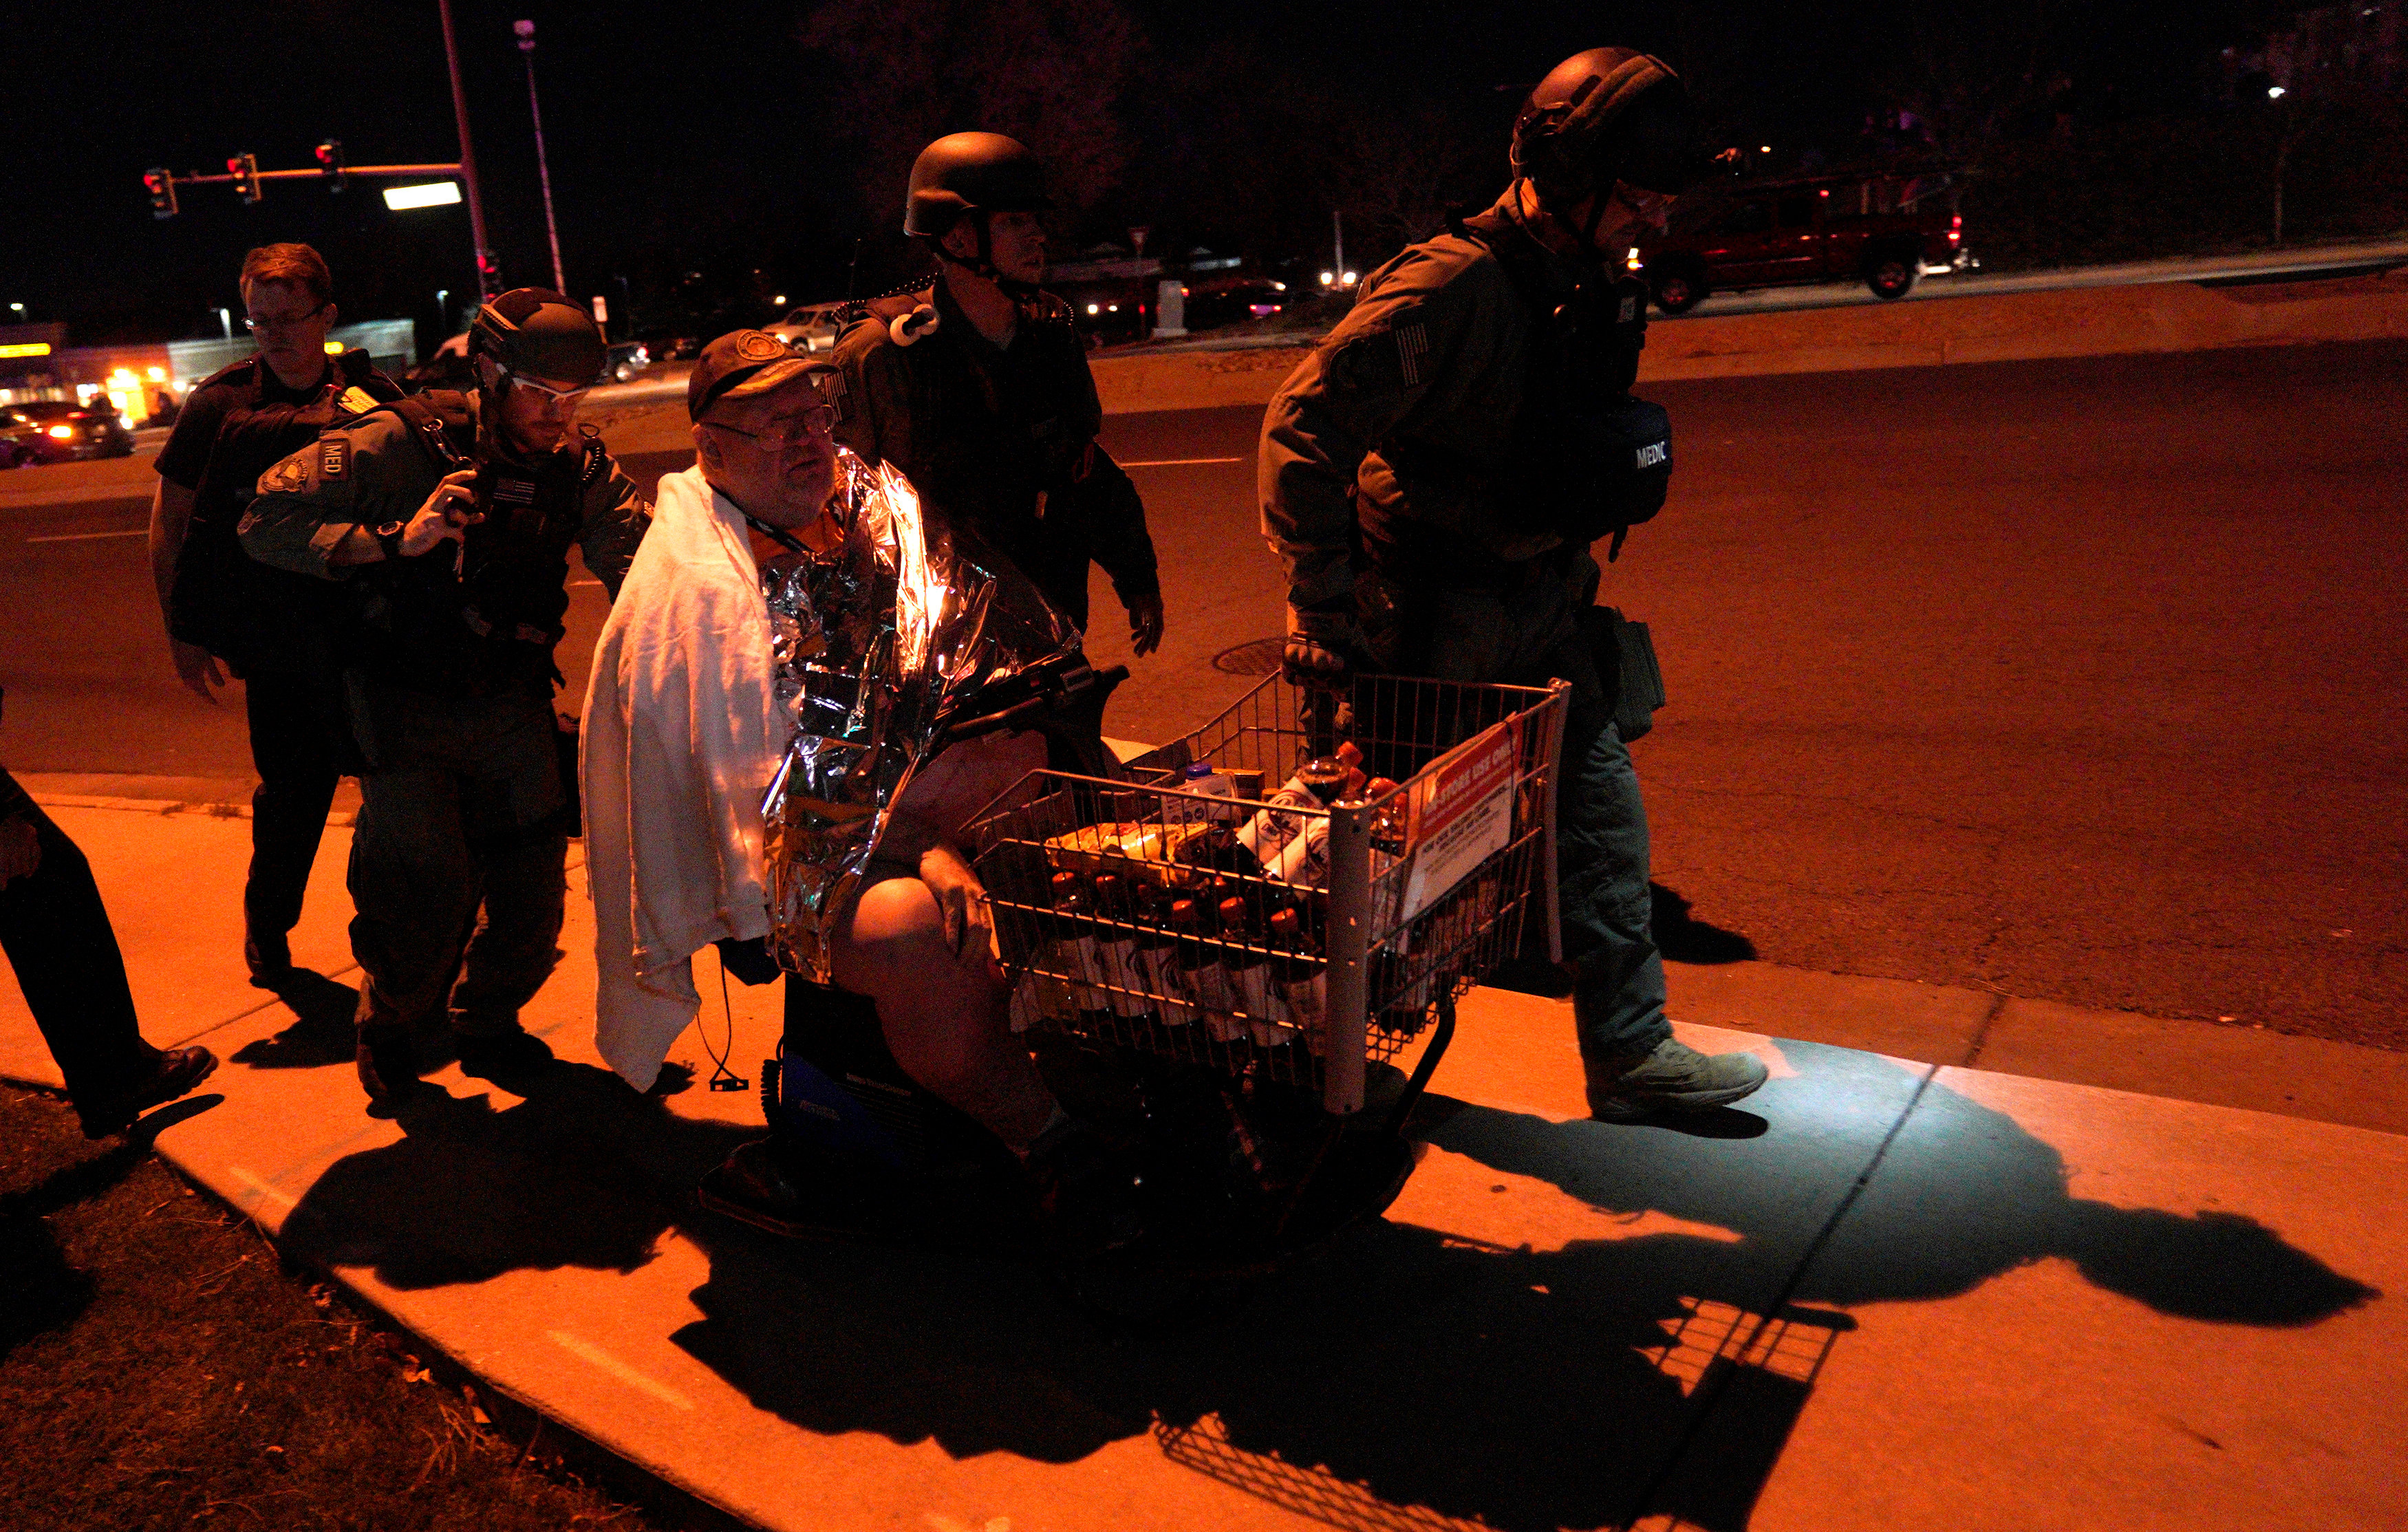 Patrick Carnes is evacuated in a Walmart cart by SWAT medics from the scene of a shooting at a Walmart where Carnes was shopping in Thornton, Colorado.